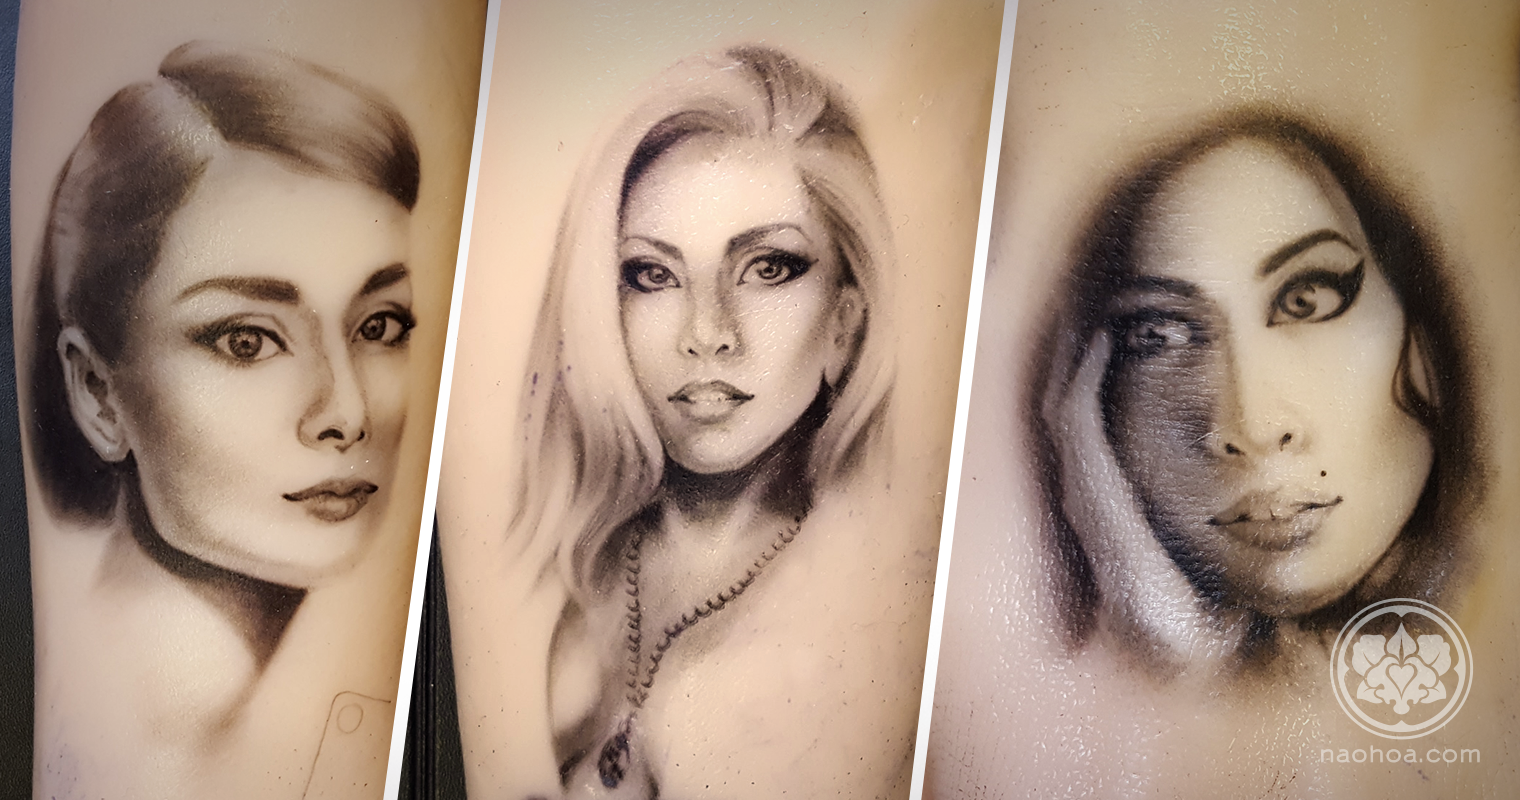 Tattoo portraits of Audrey Hepburn, Lady Gaga and Amy Winehouse.